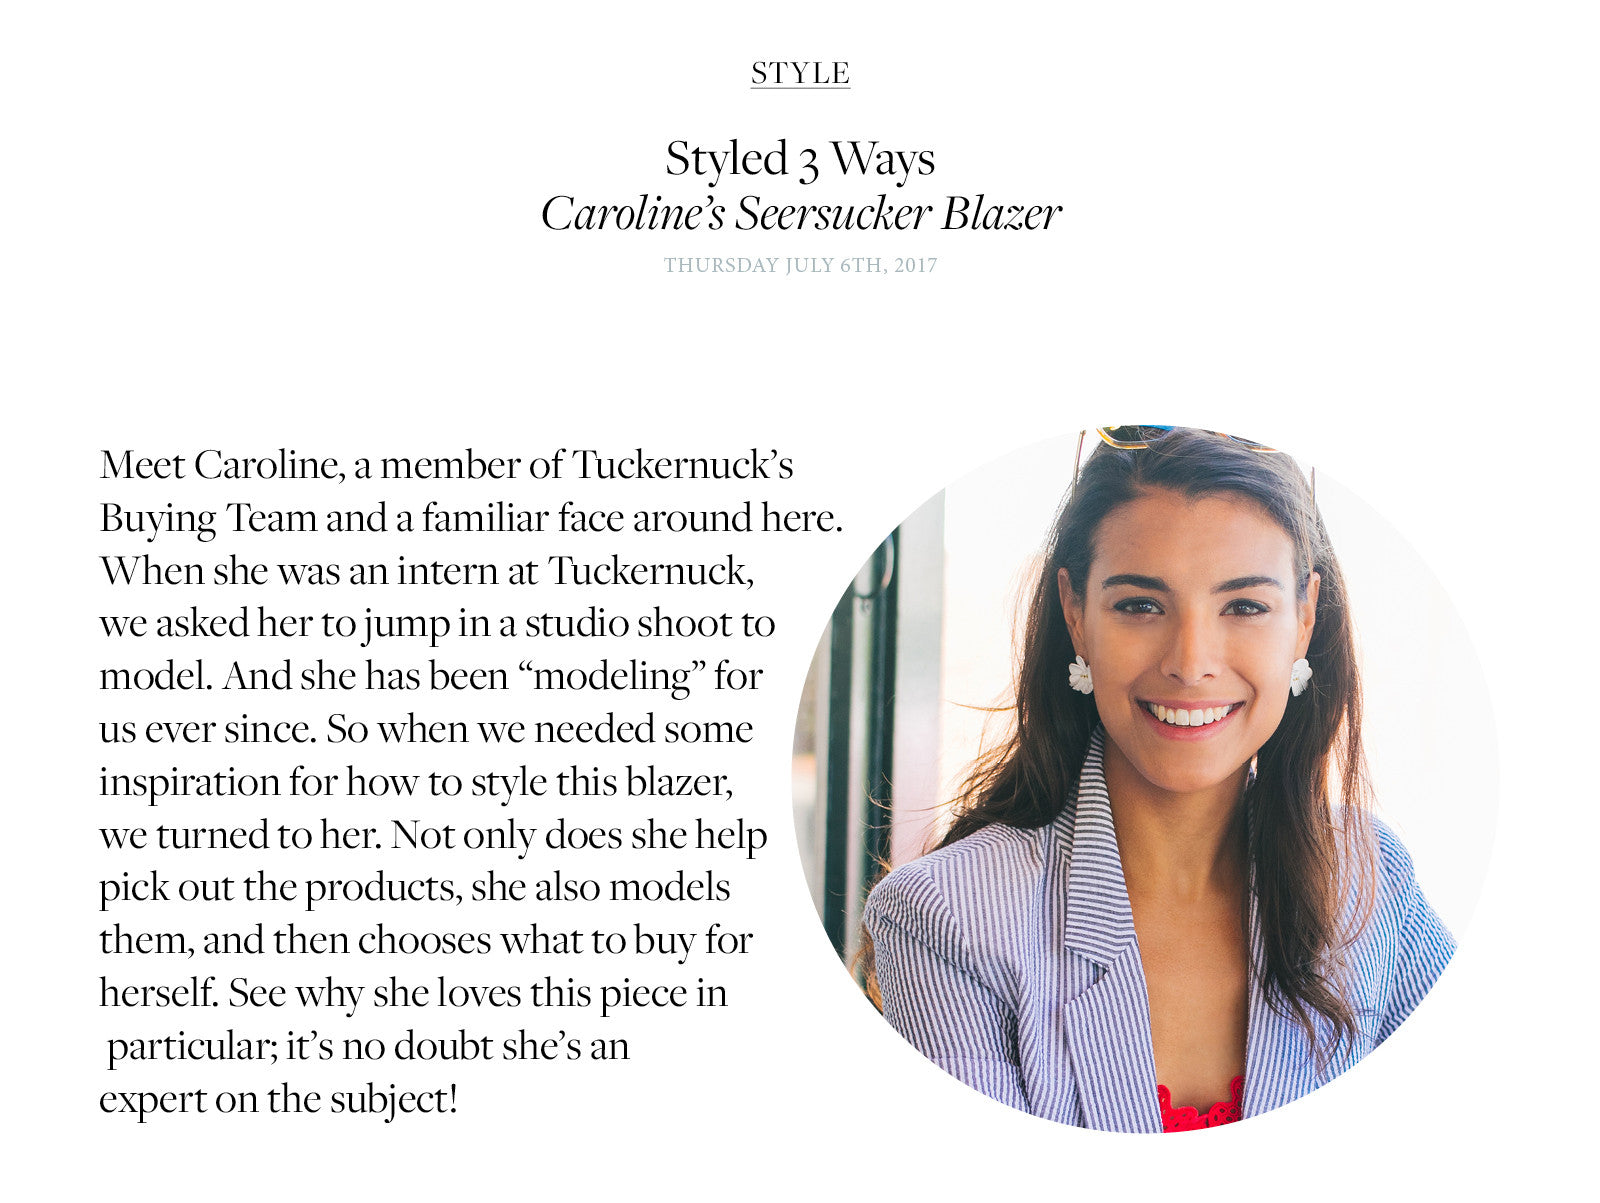 "Meet Caroline, a member of Tuckernuck's  Buying Team and a familiar face around here. When she was an intern at Tuckernuck, we asked her to jump in a studio shoot to model. And she has been ""modeling"" for us ever since. So when we needed some inspiration for how to style this blazer, we turned to her. Not only does she help pick out the products, she also models them, and then chooses what to buy for herself. See why she loves this piece in  particular; it's no doubt she's an  expert on the subject!"